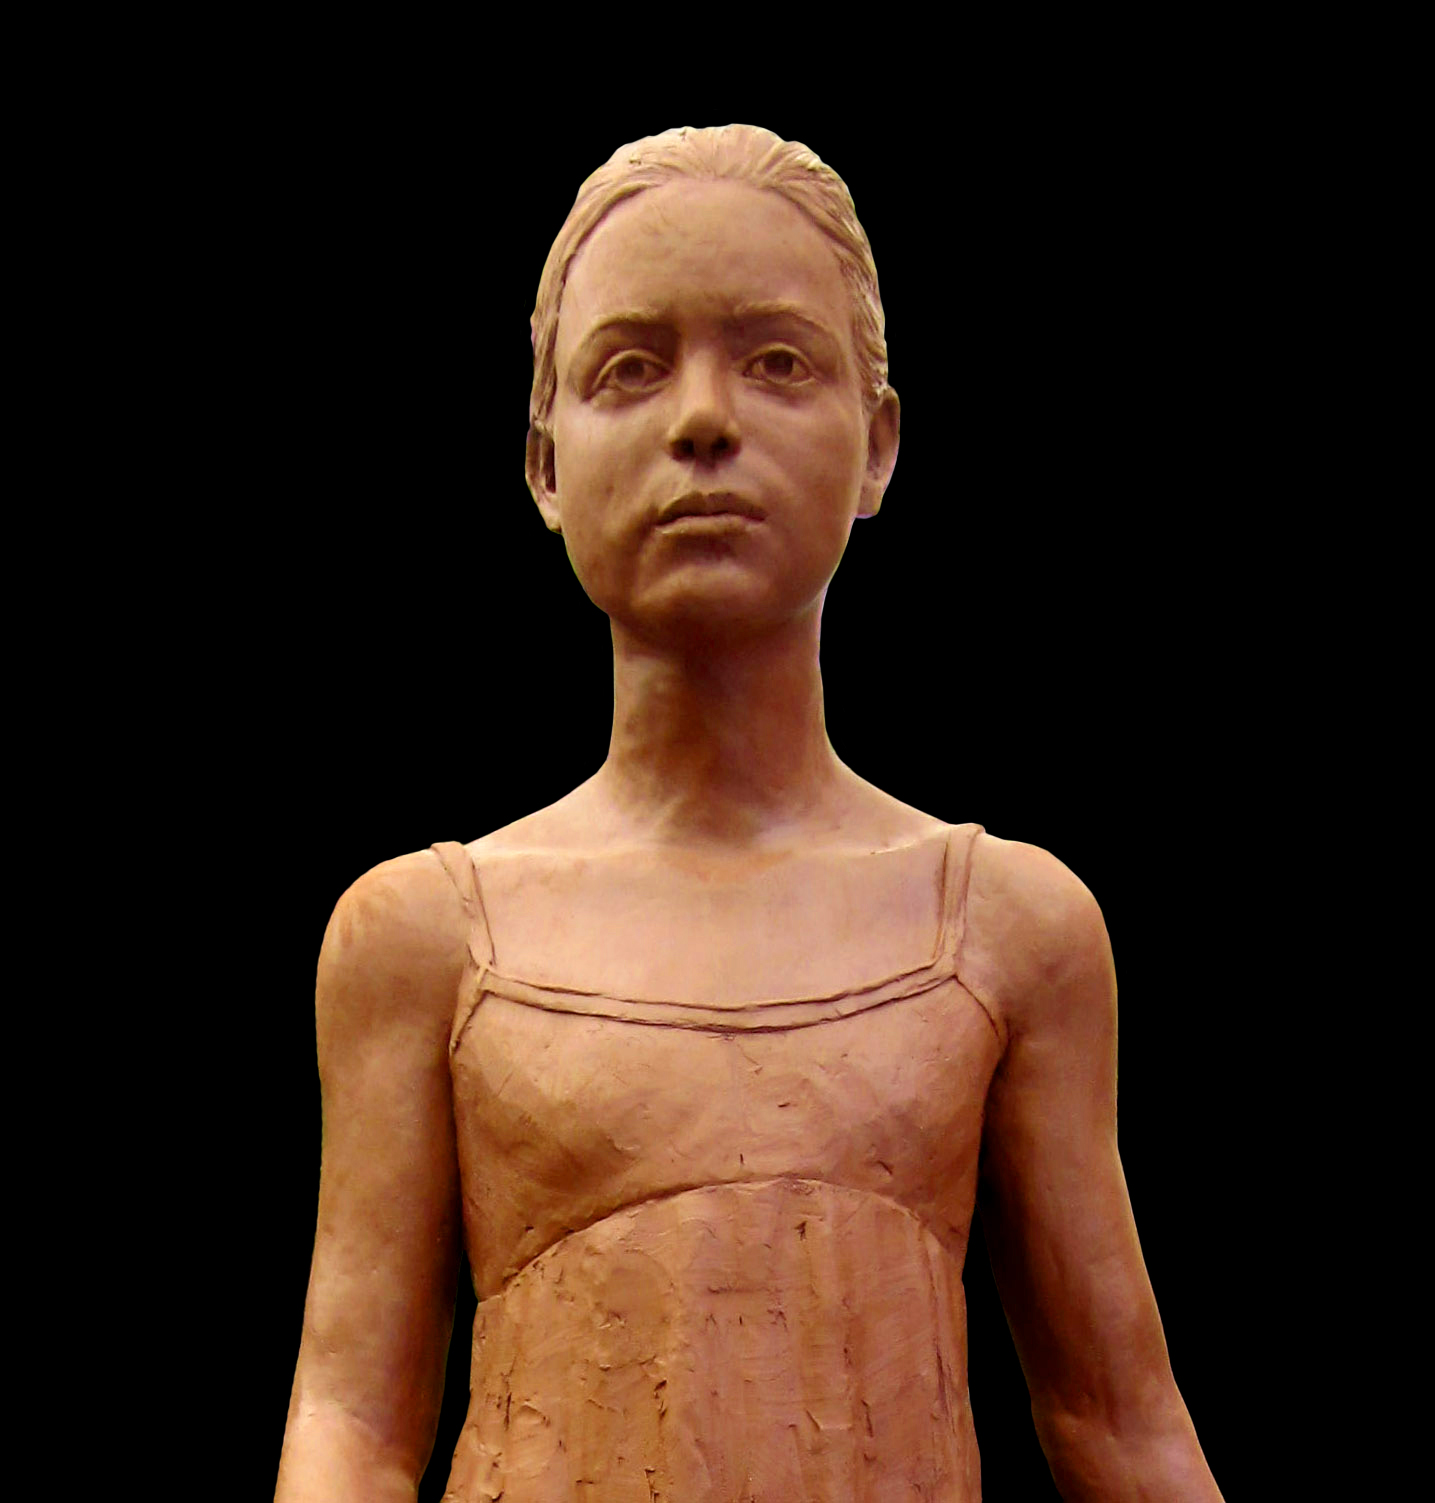 Ballerina, clay for bronze, life-size